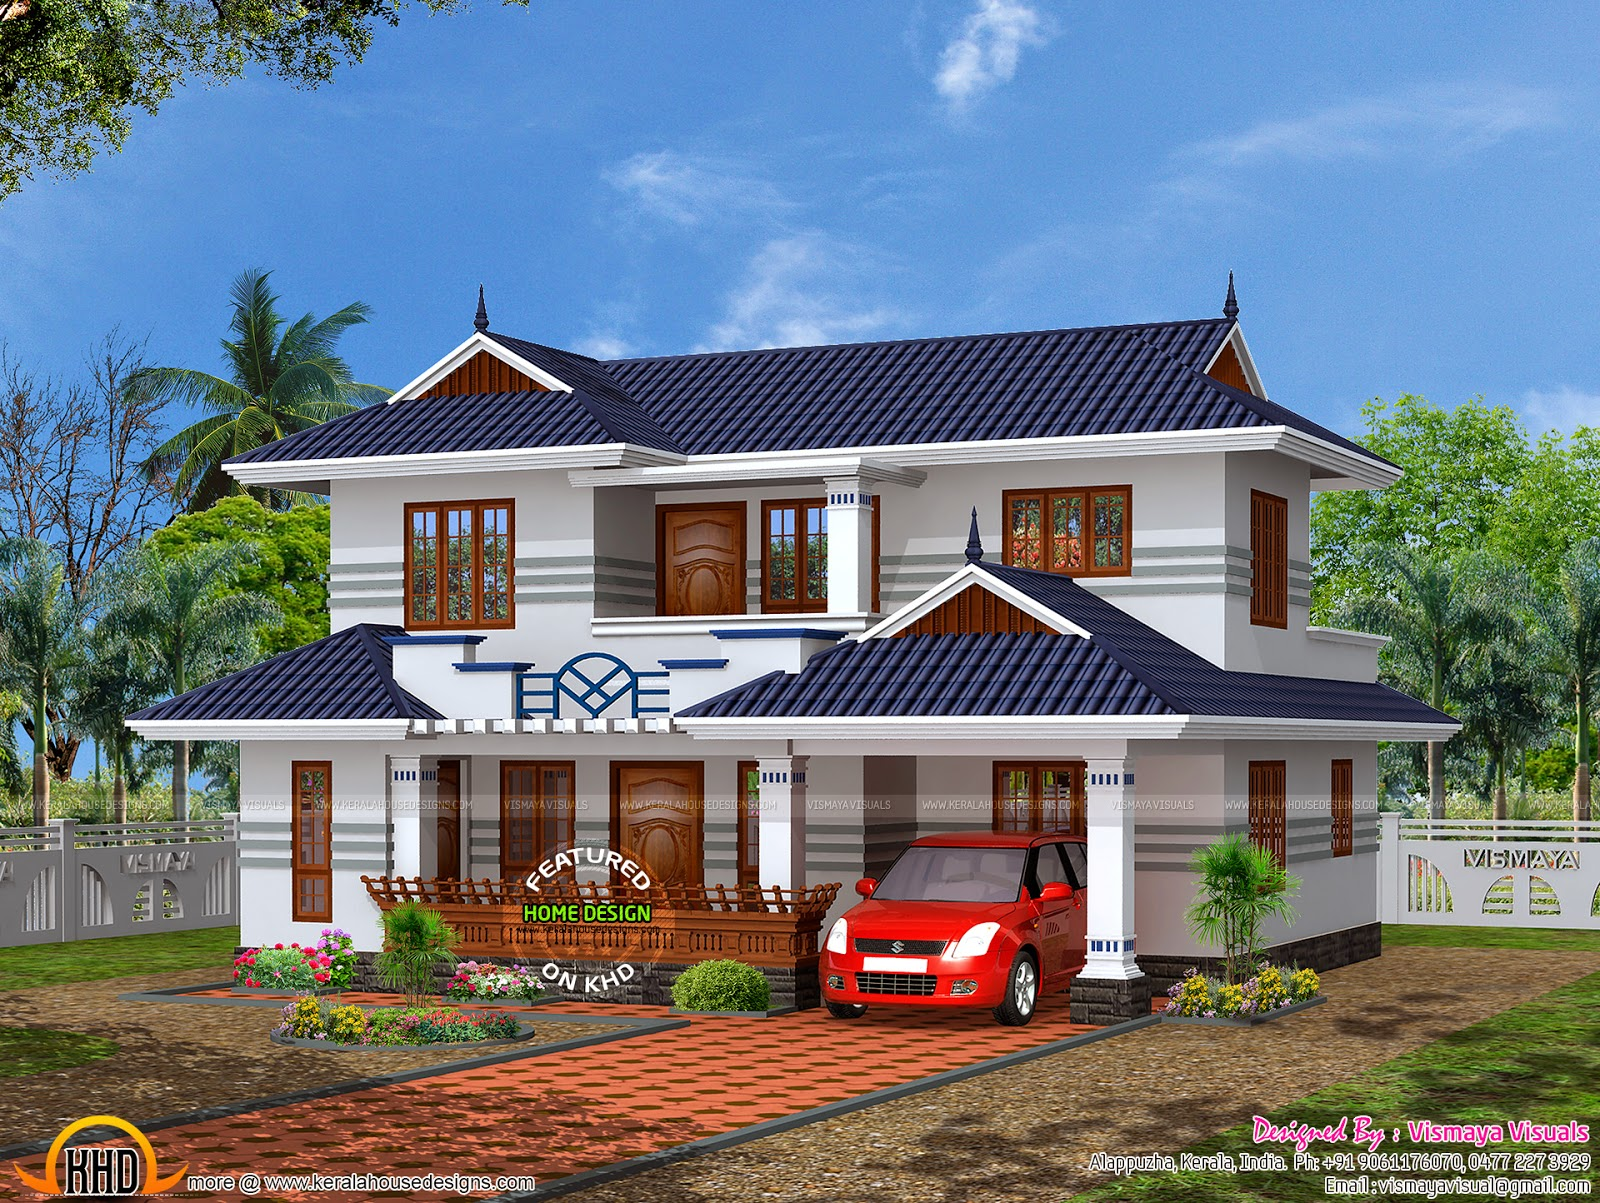 Kerala model houses plans - Home design and style